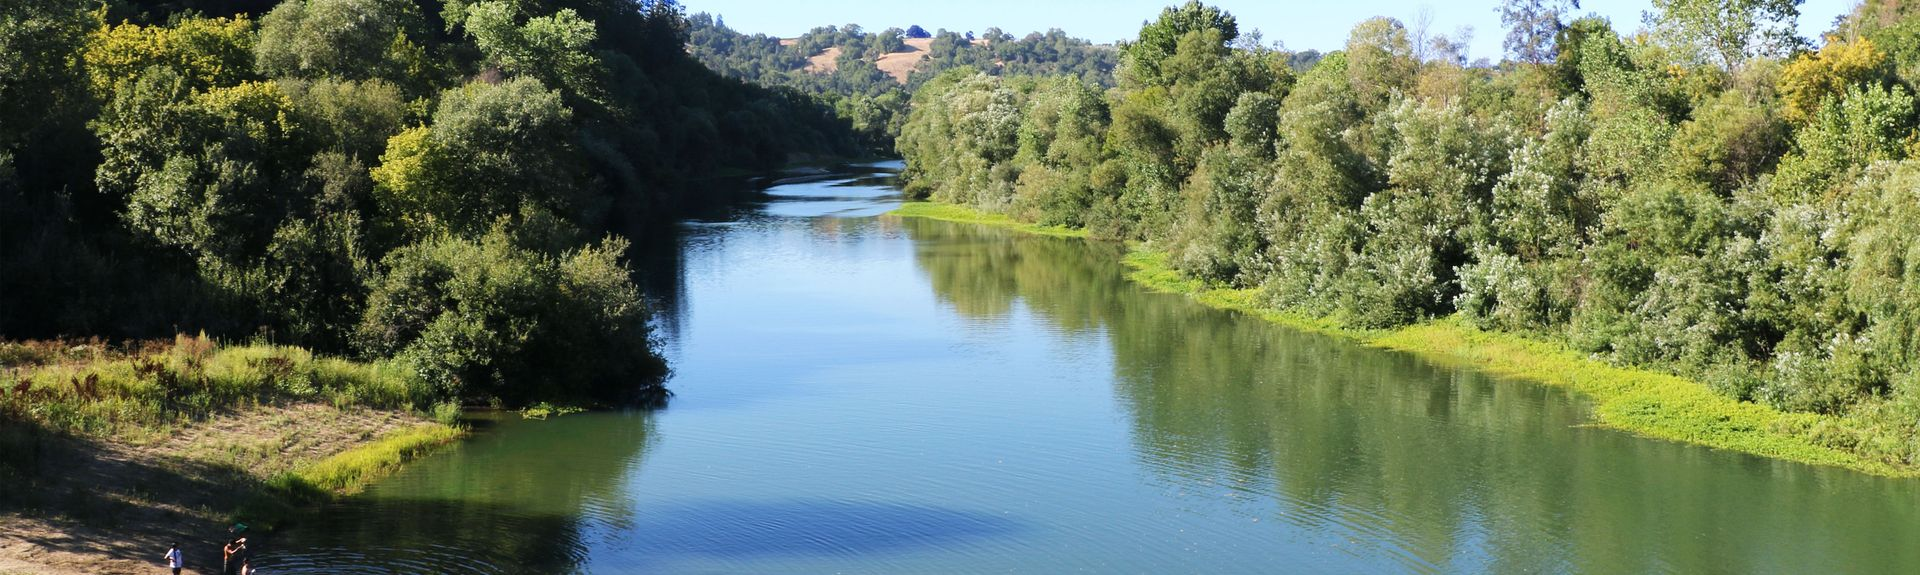 Russian River, CA, USA